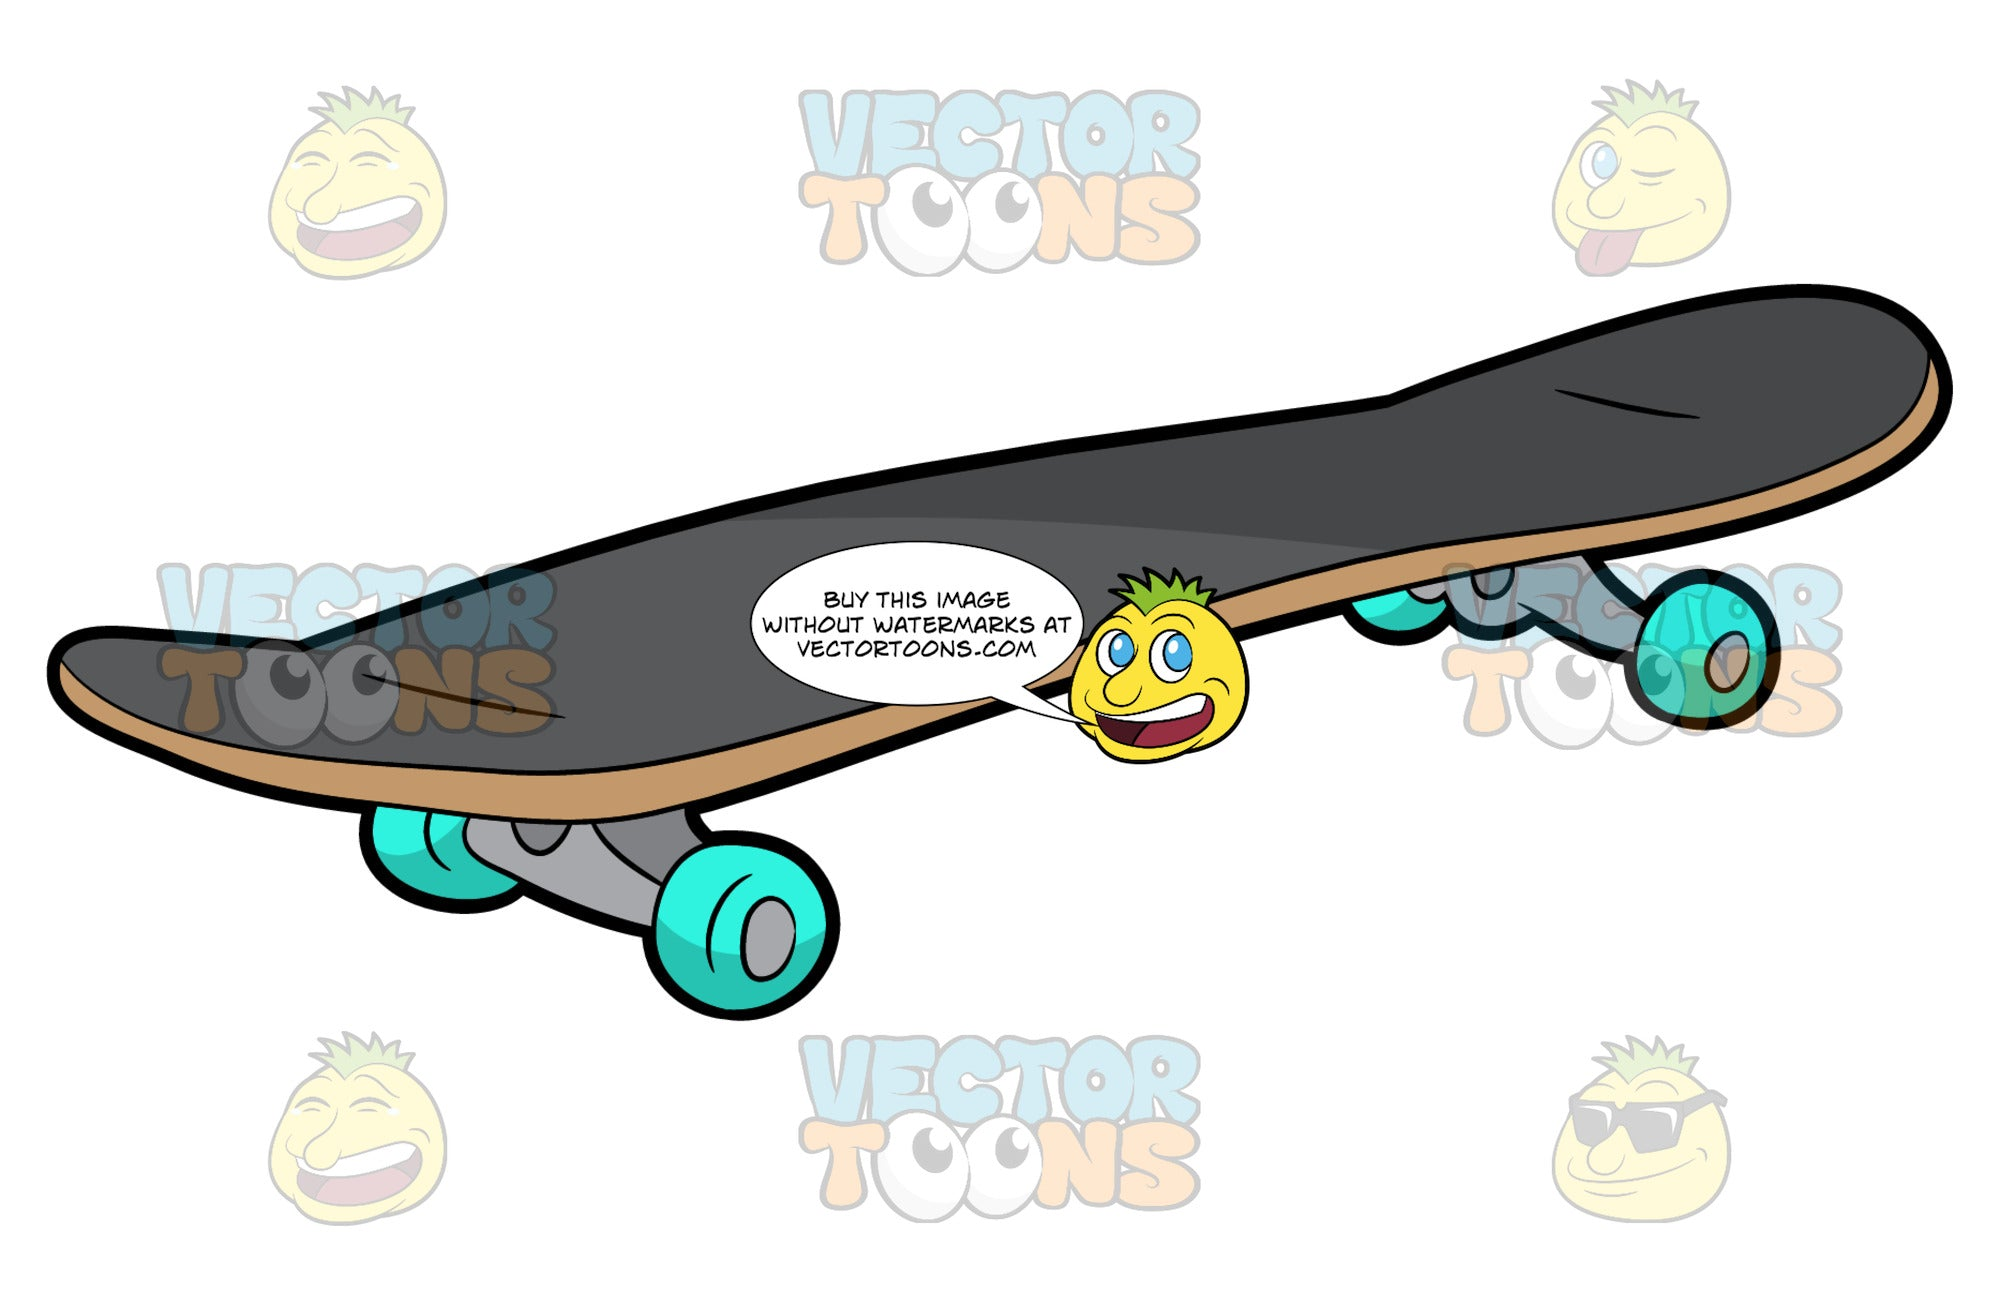 A Classic Skateboard. A skateboard with a wooden deck, dark gray grip tape, steel gray trucks, and bright teal wheels